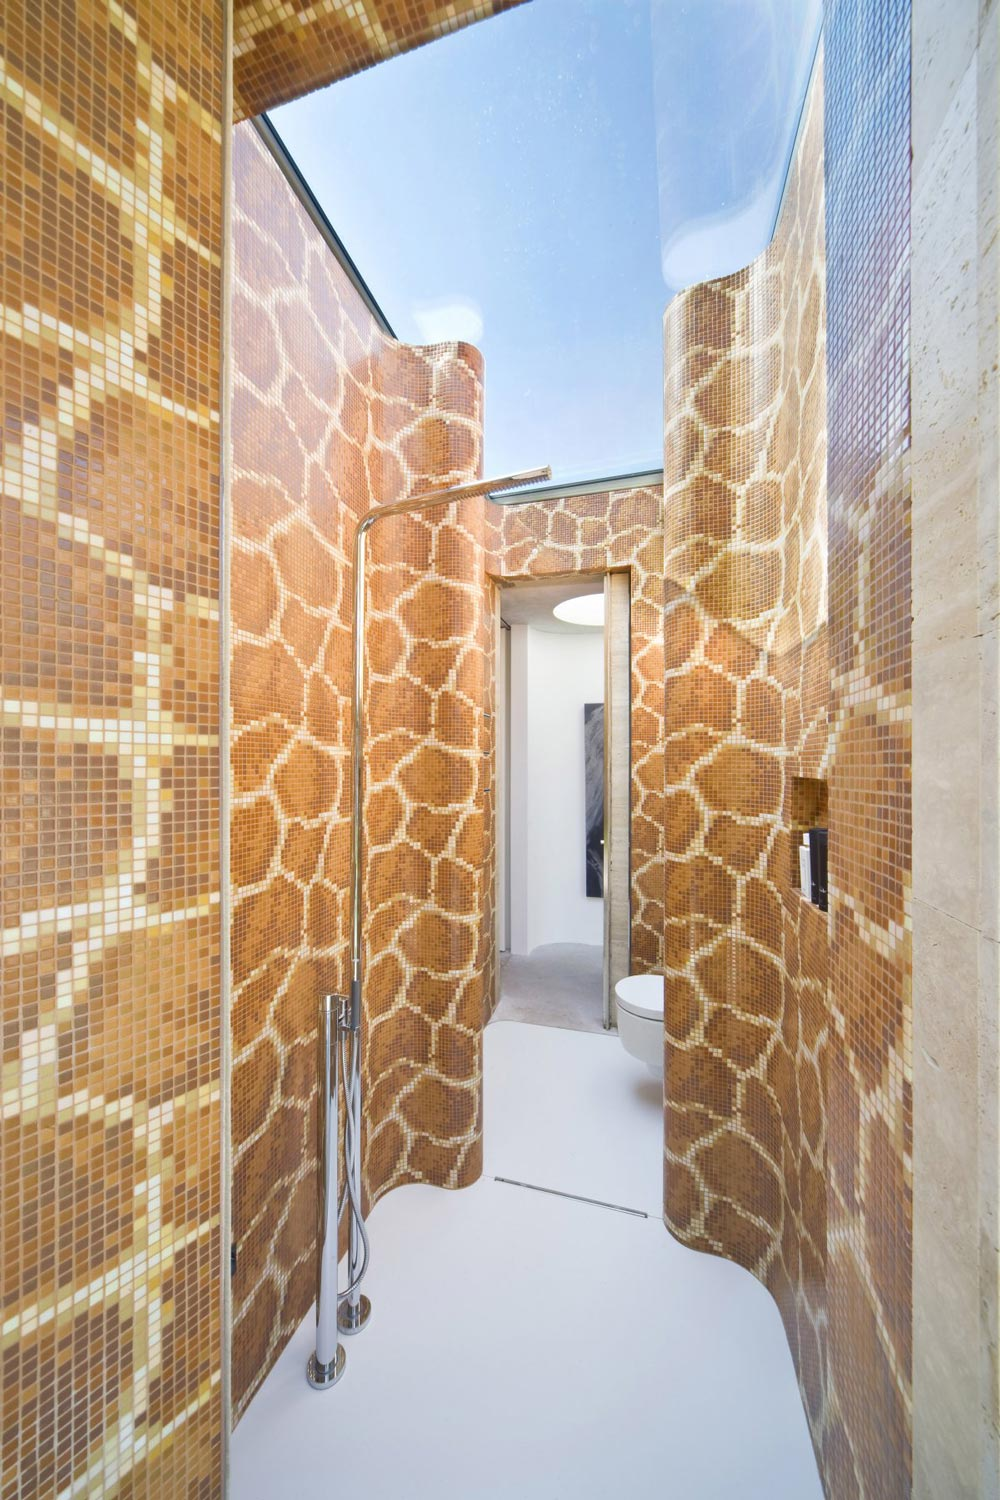 Shower Room, Extension and Renovation in Eindhoven, The Netherlands